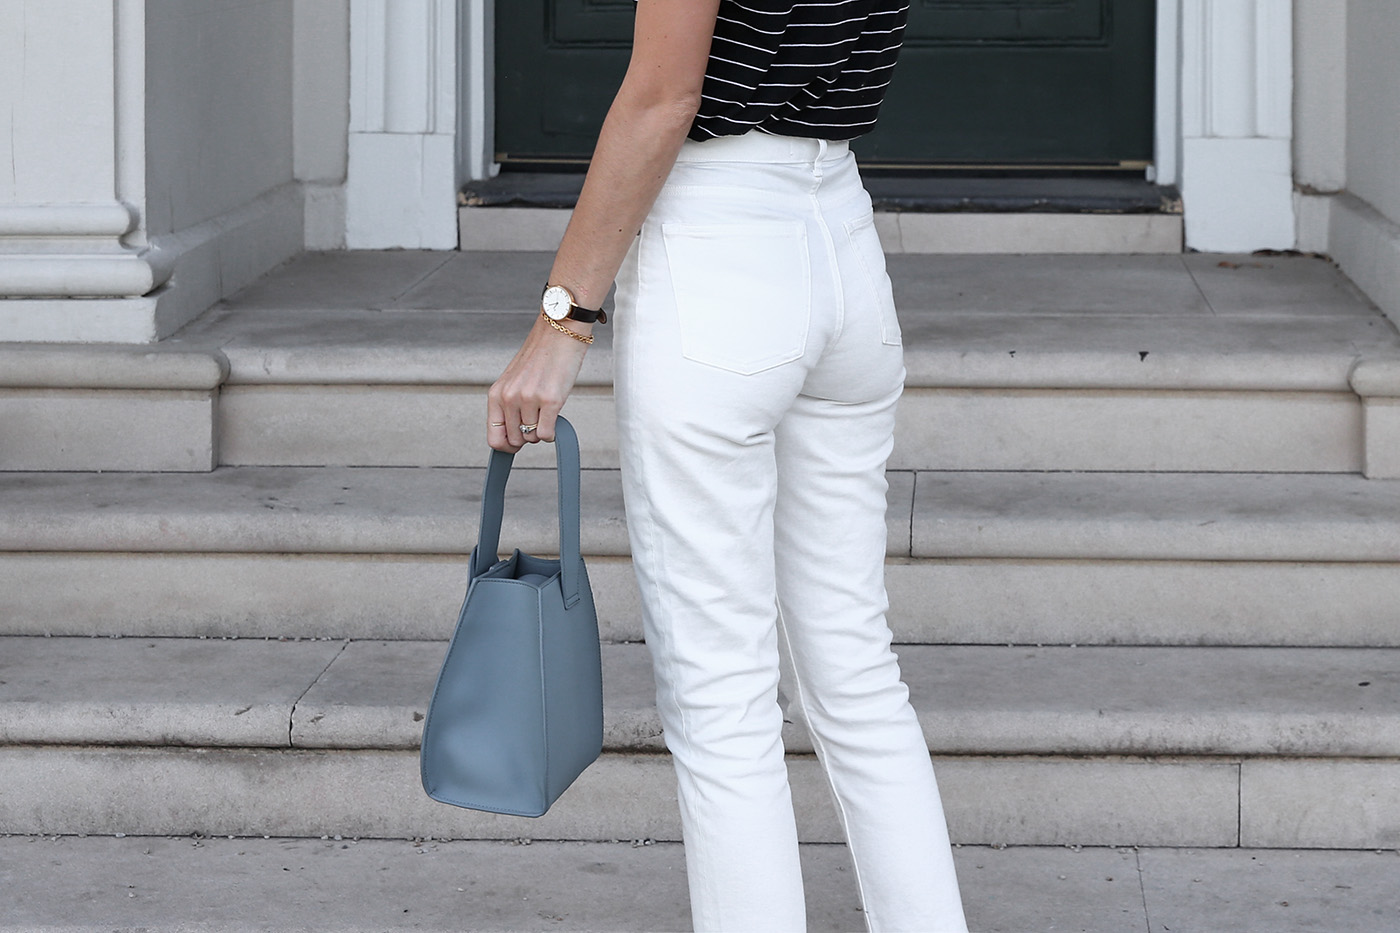 everlane cheeky straight leg jean review and minimal outfit